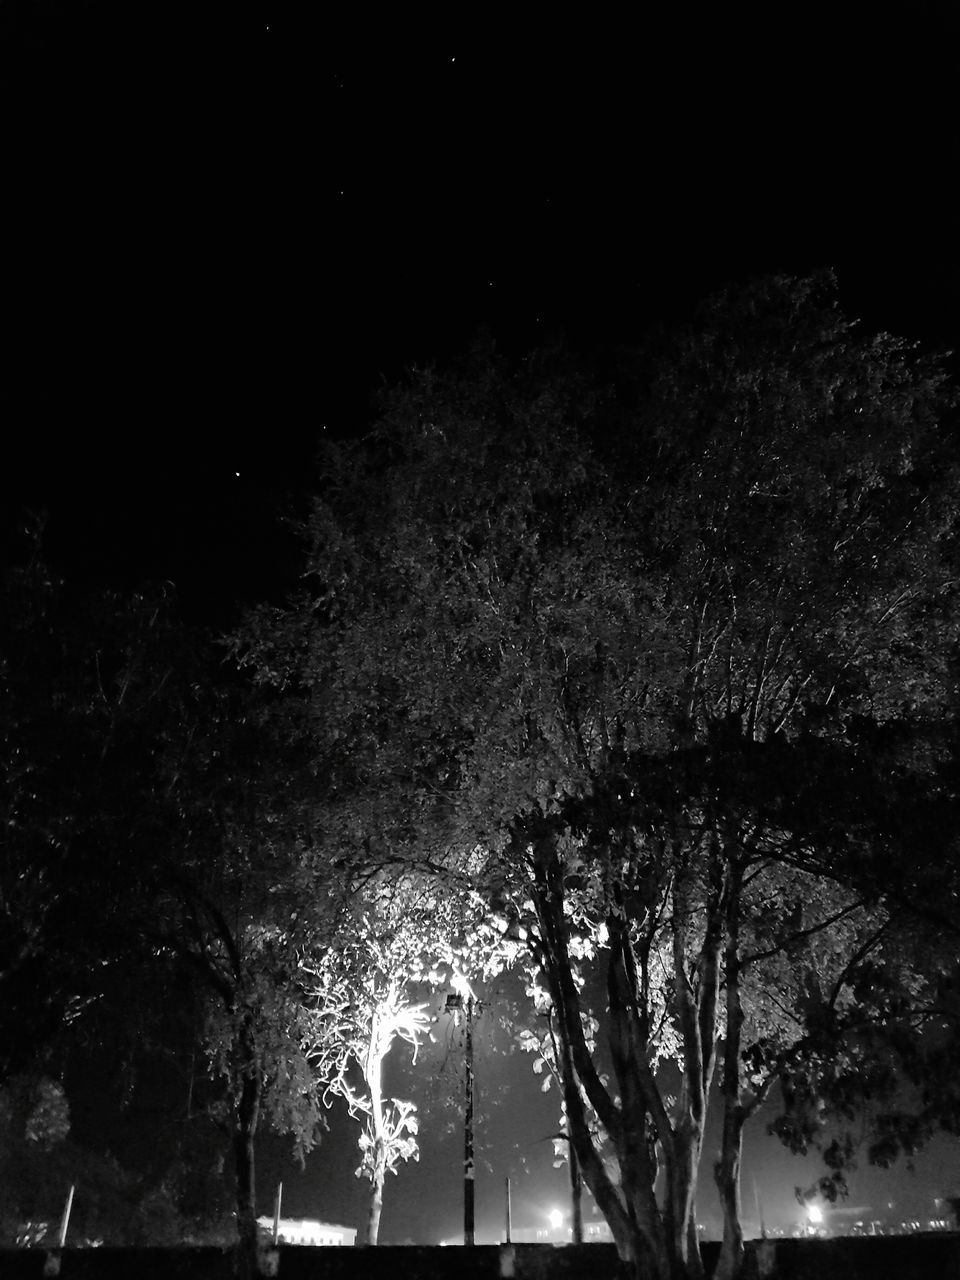 tree, night, illuminated, growth, branch, low angle view, nature, outdoors, no people, silhouette, tree trunk, beauty in nature, sky